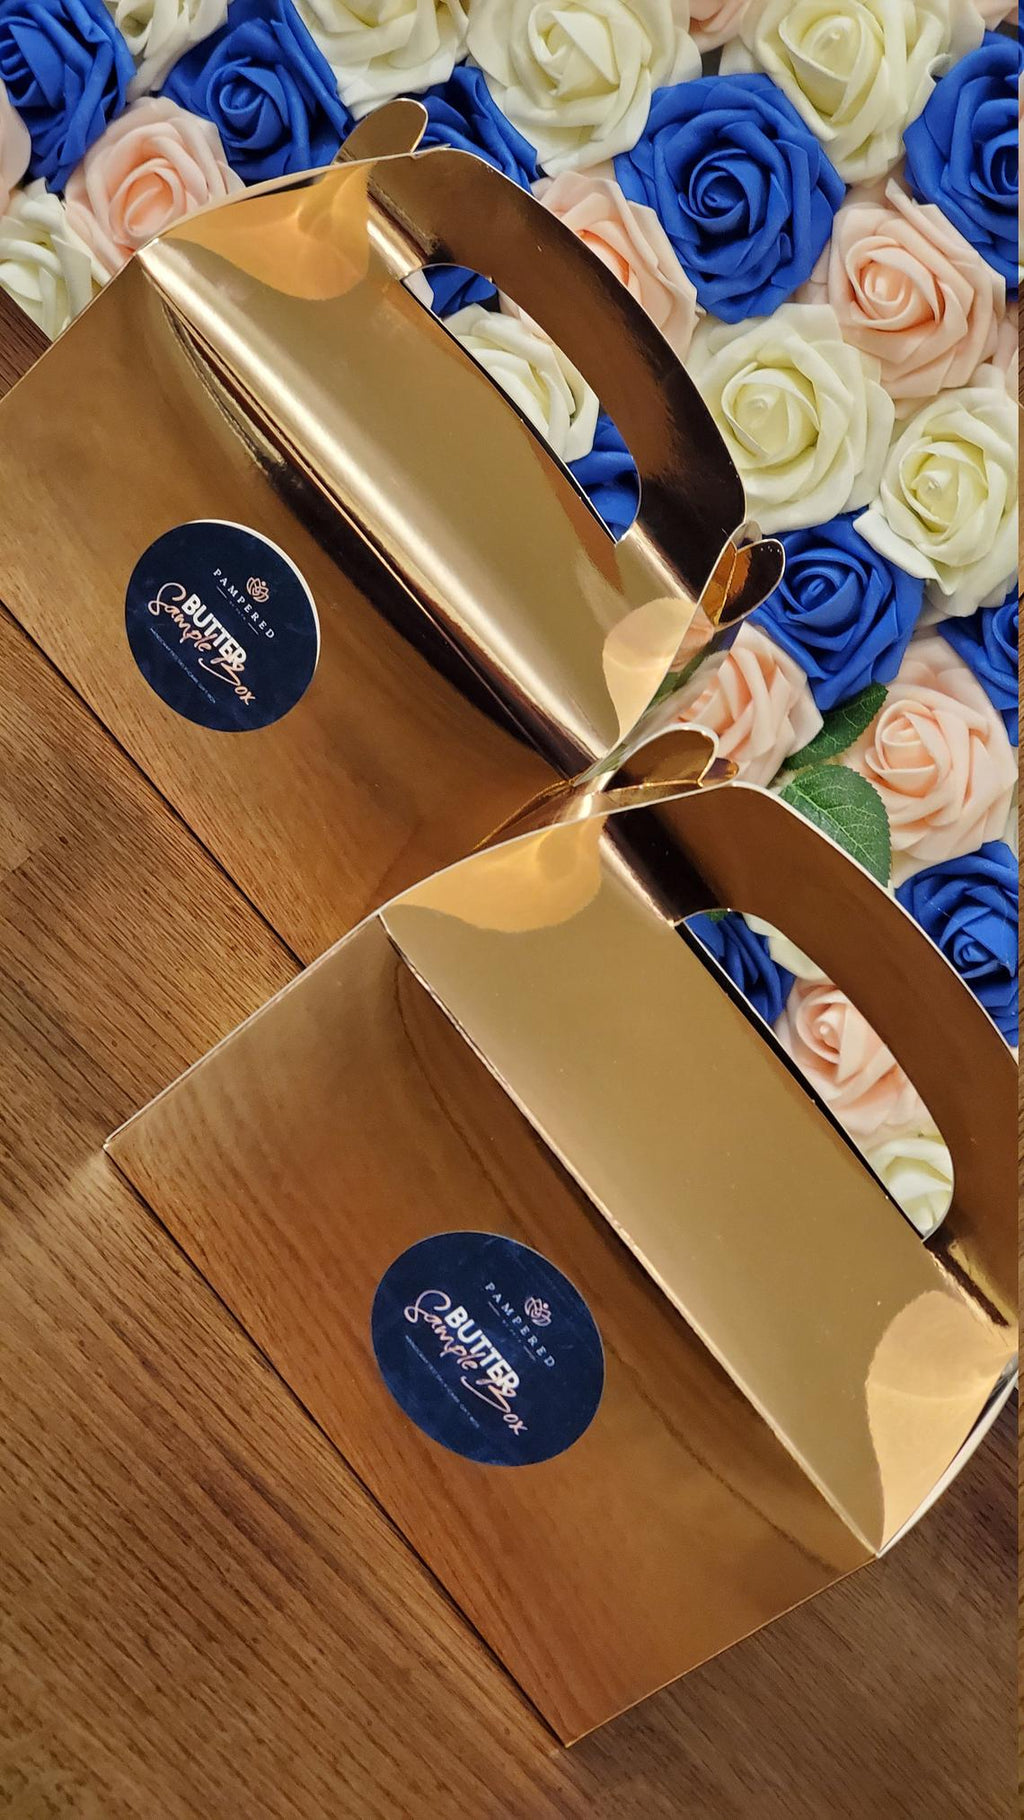 Pampered luxury in body butter boxes